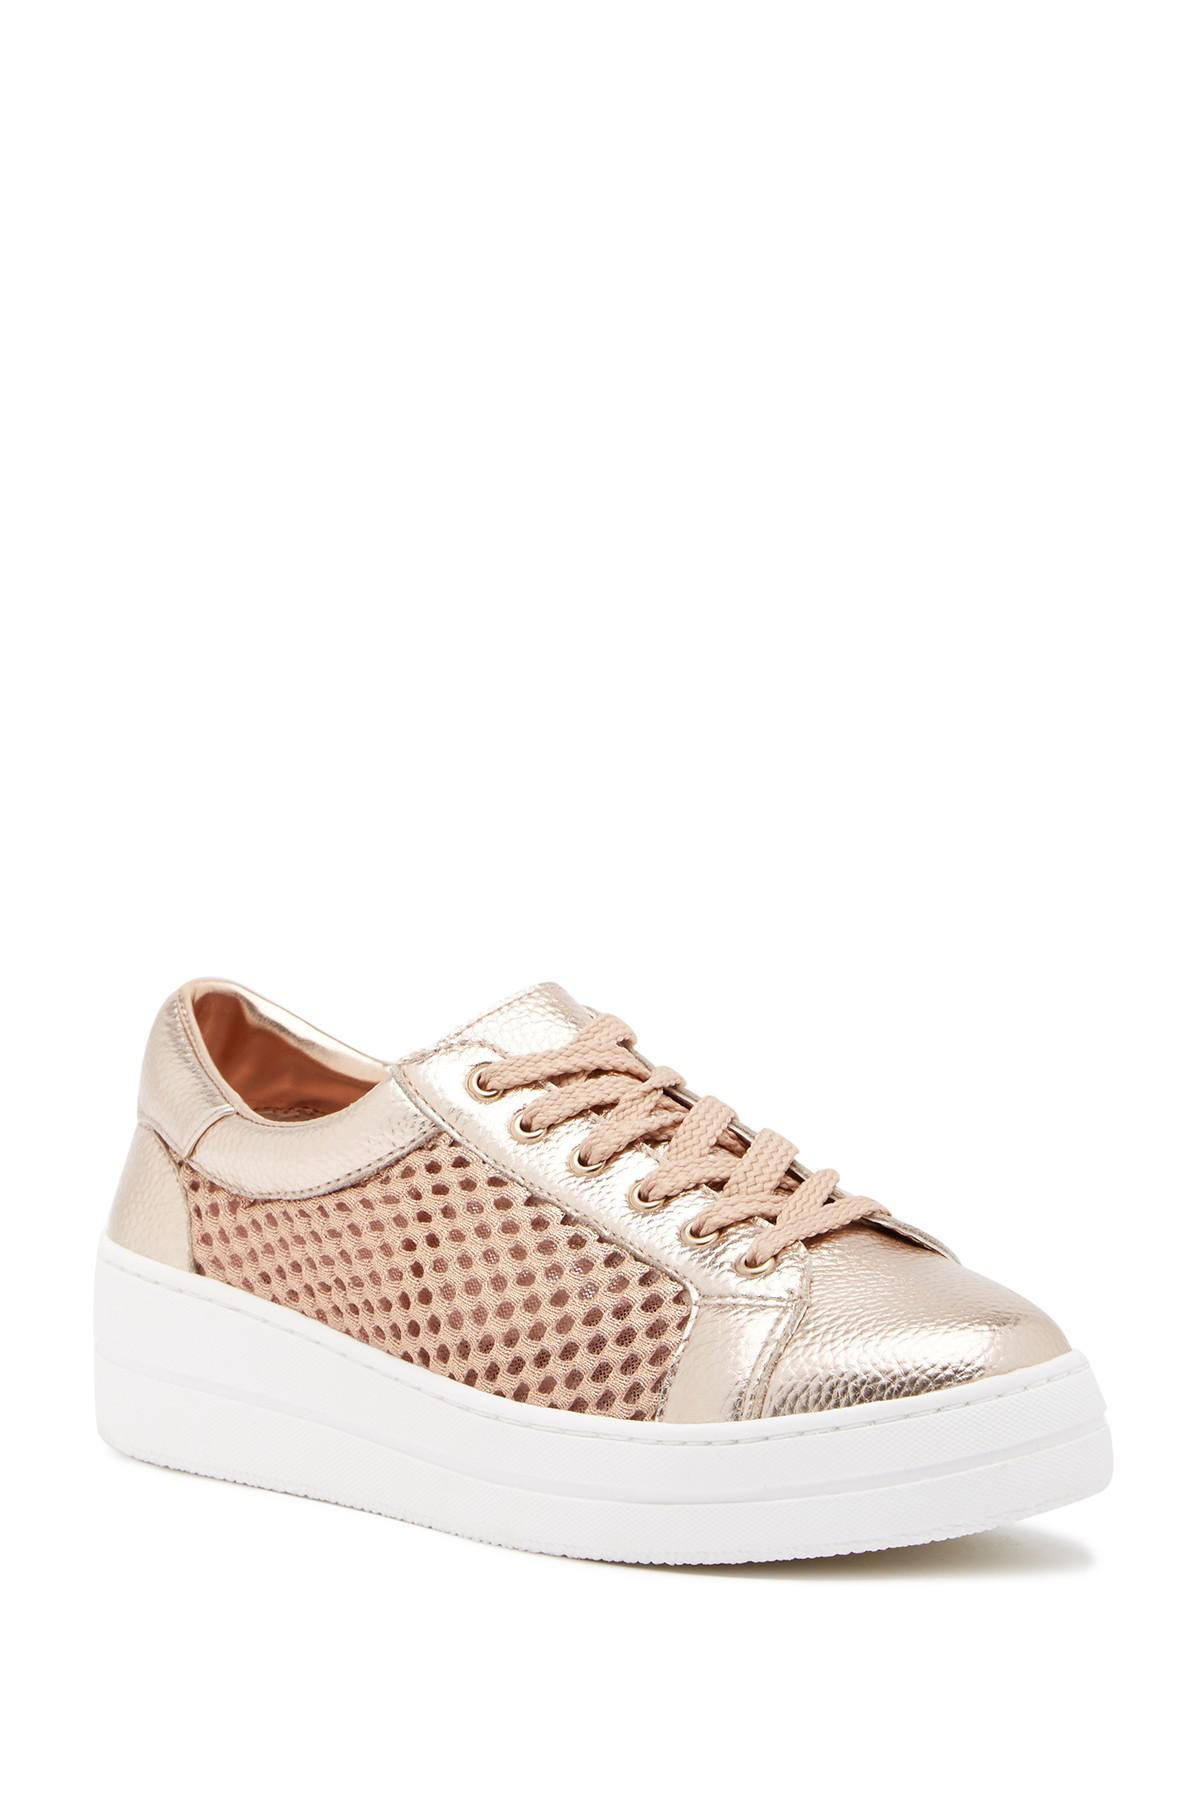 1e4df0ce734 Gallery. Previously sold at  Nordstrom Rack · Women s Platform Sneakers  Women s Steve Madden ...